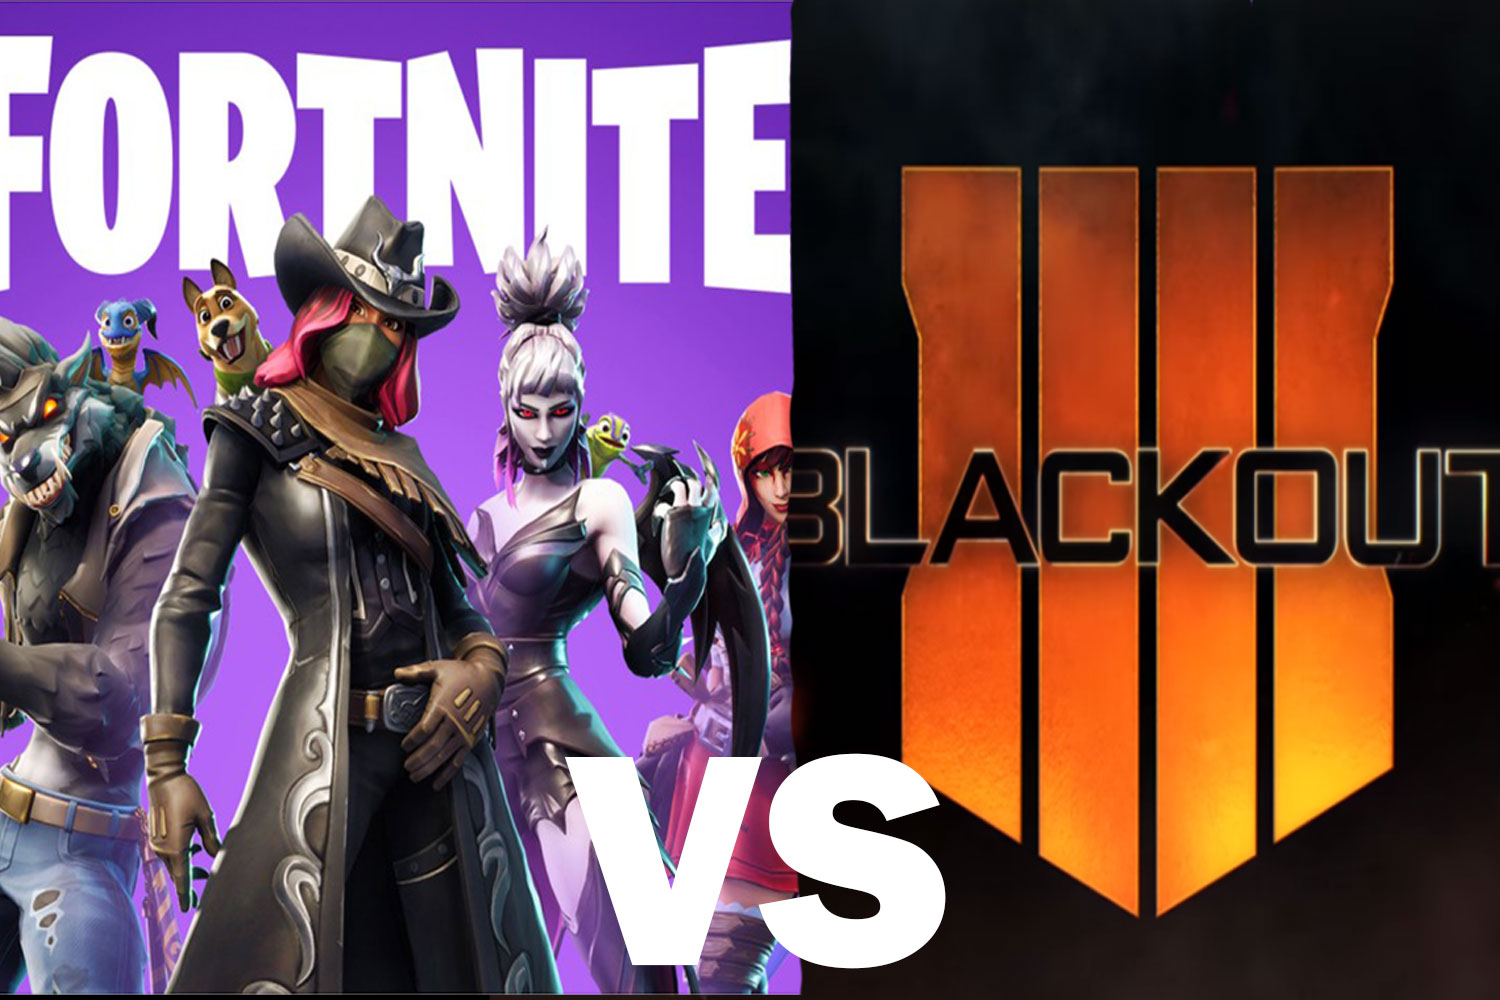 The two biggest video games are now head to head in the battle royale game modes, but who takes the number one spot?